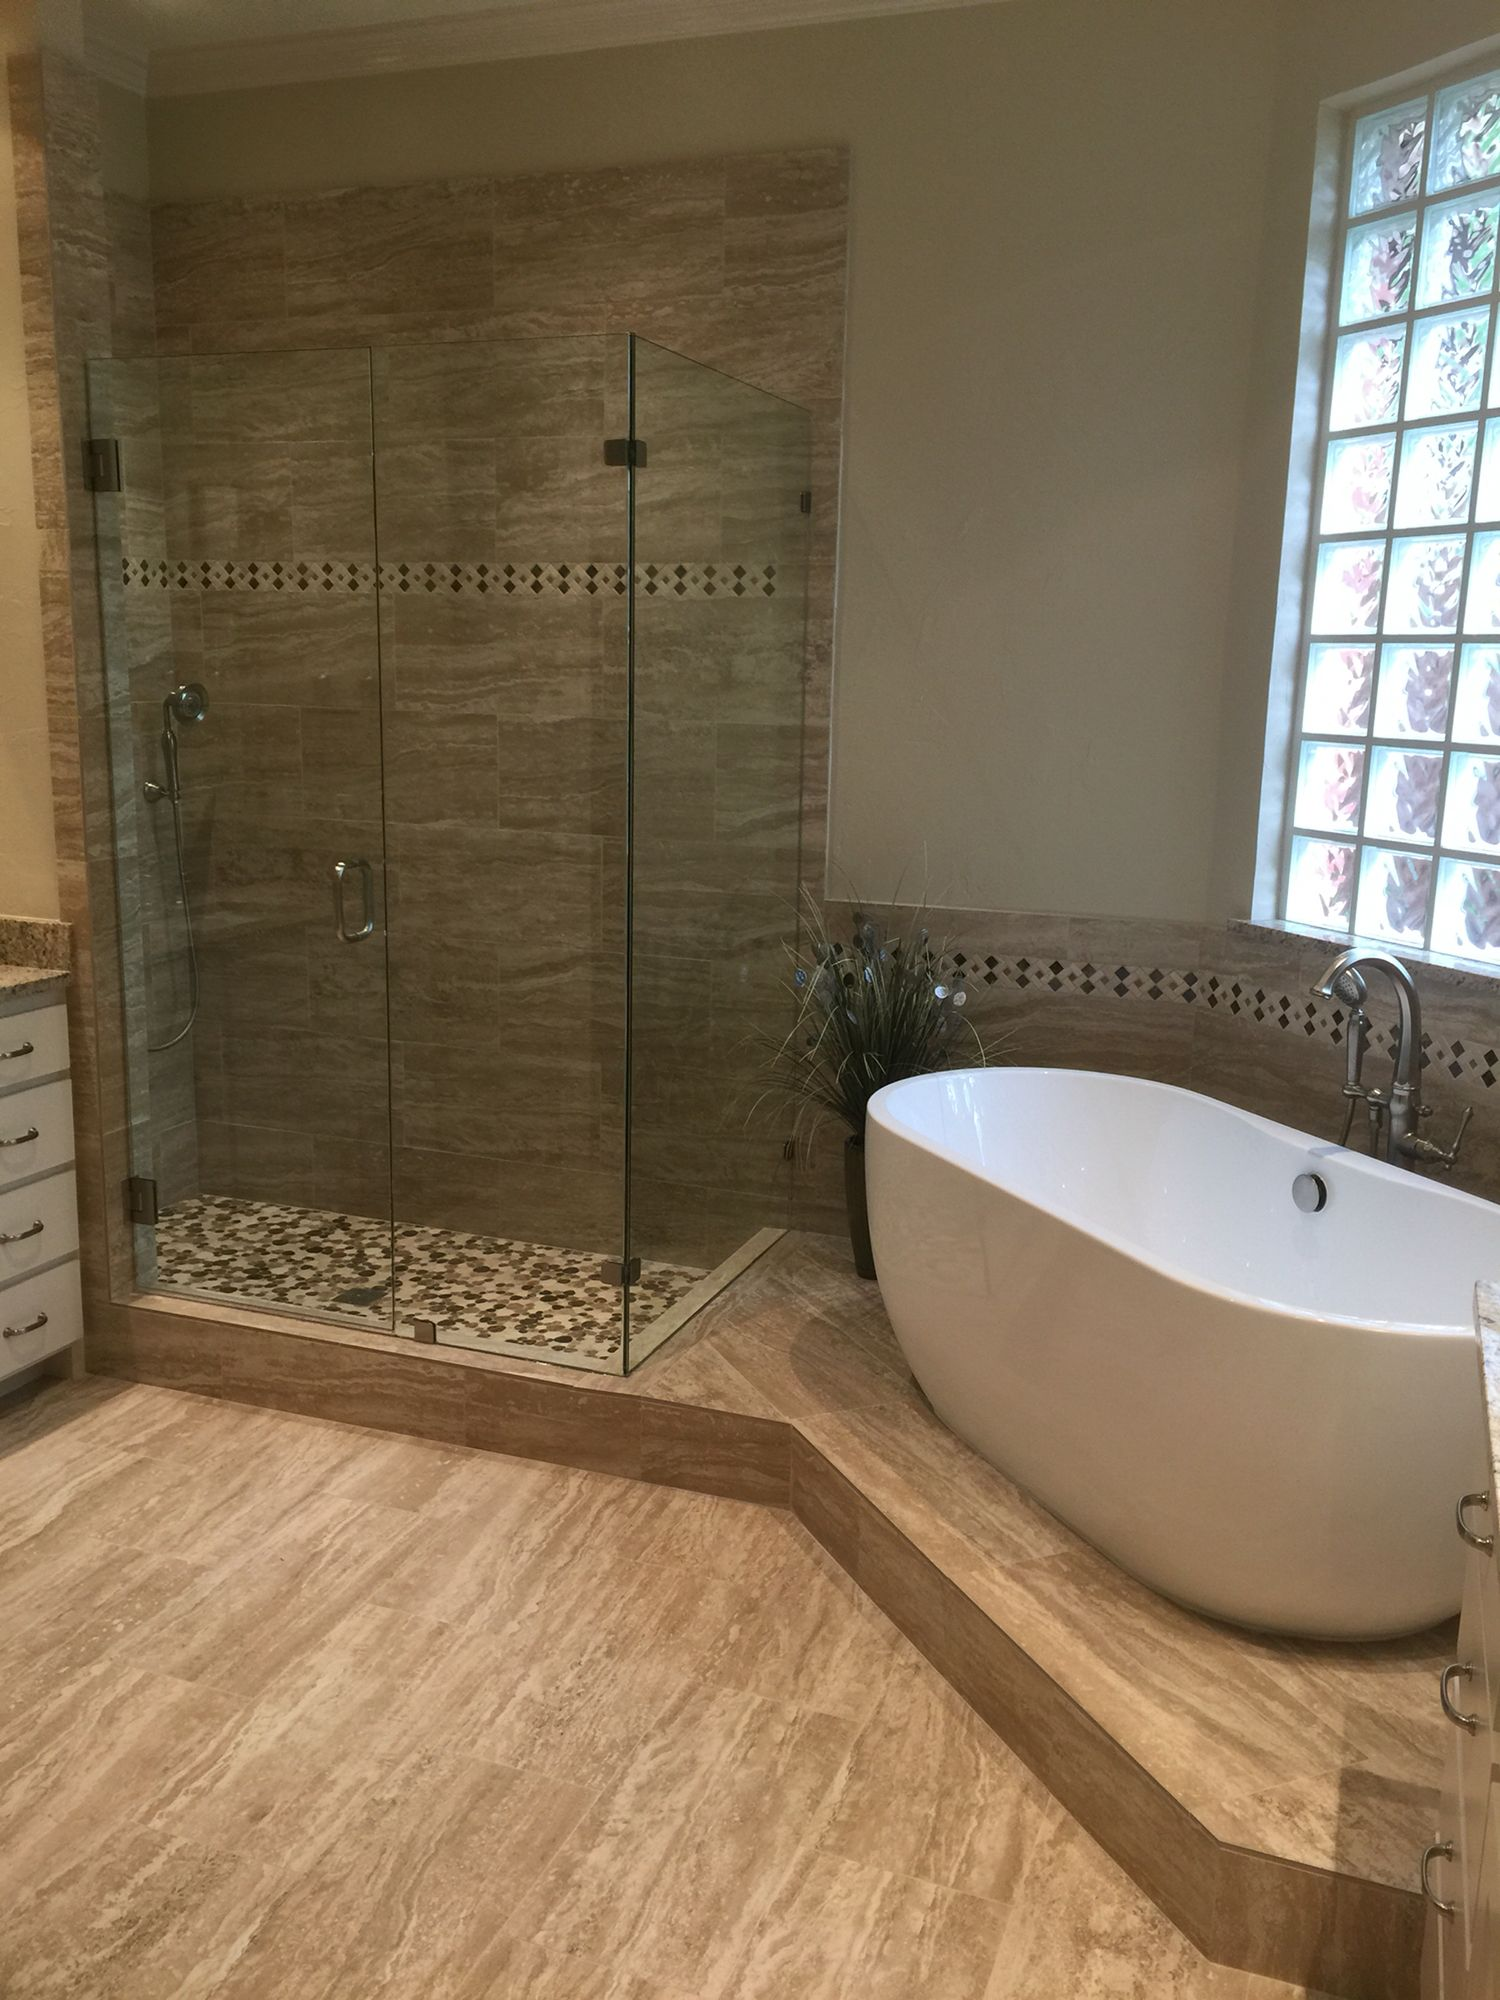 Bathroom Remodeling Project In PlanoTX Bathroom Ideas - Bathroom remodeling plano tx